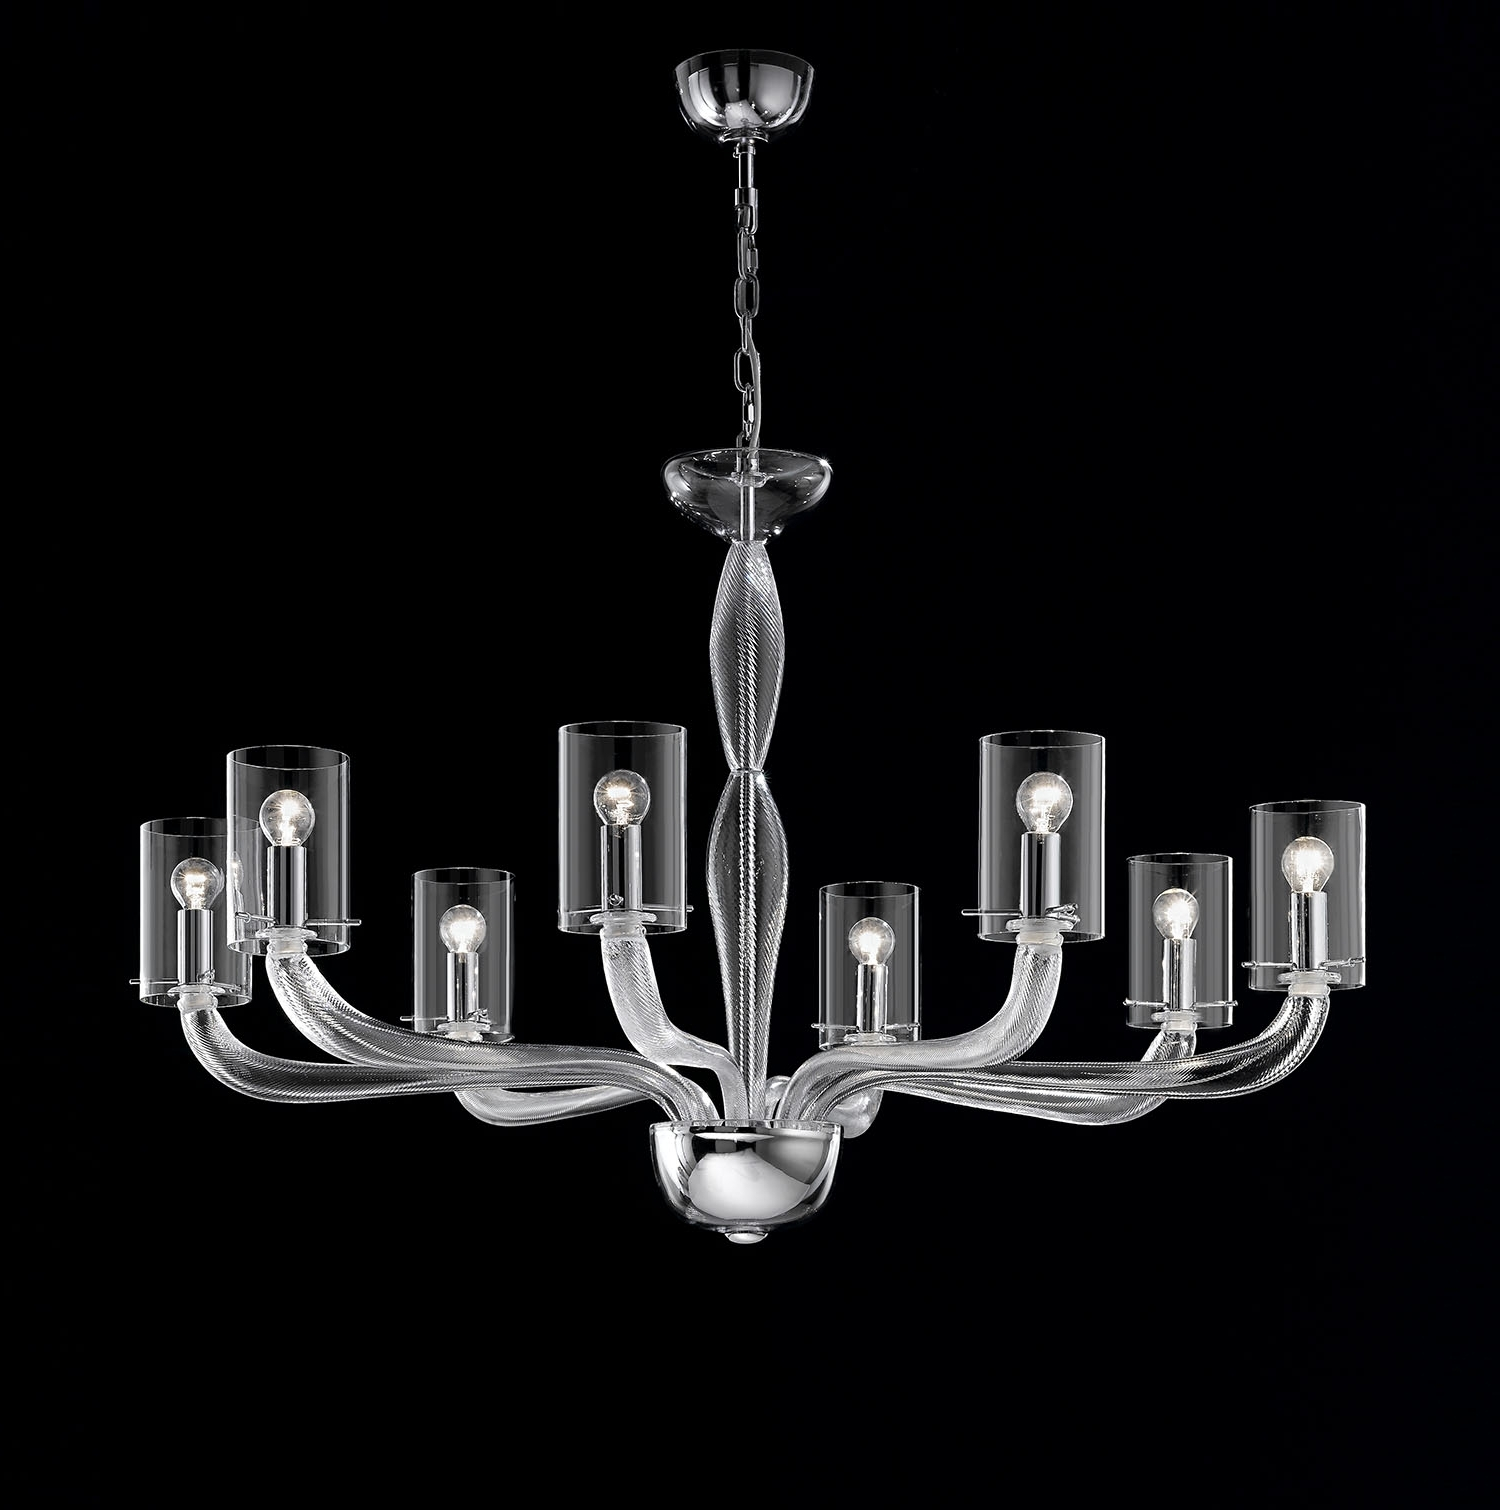 Best And Newest Modern Glass Chandeliers With Light : Modern Glass Chandelier Lighting Beautiful Italian (View 2 of 15)